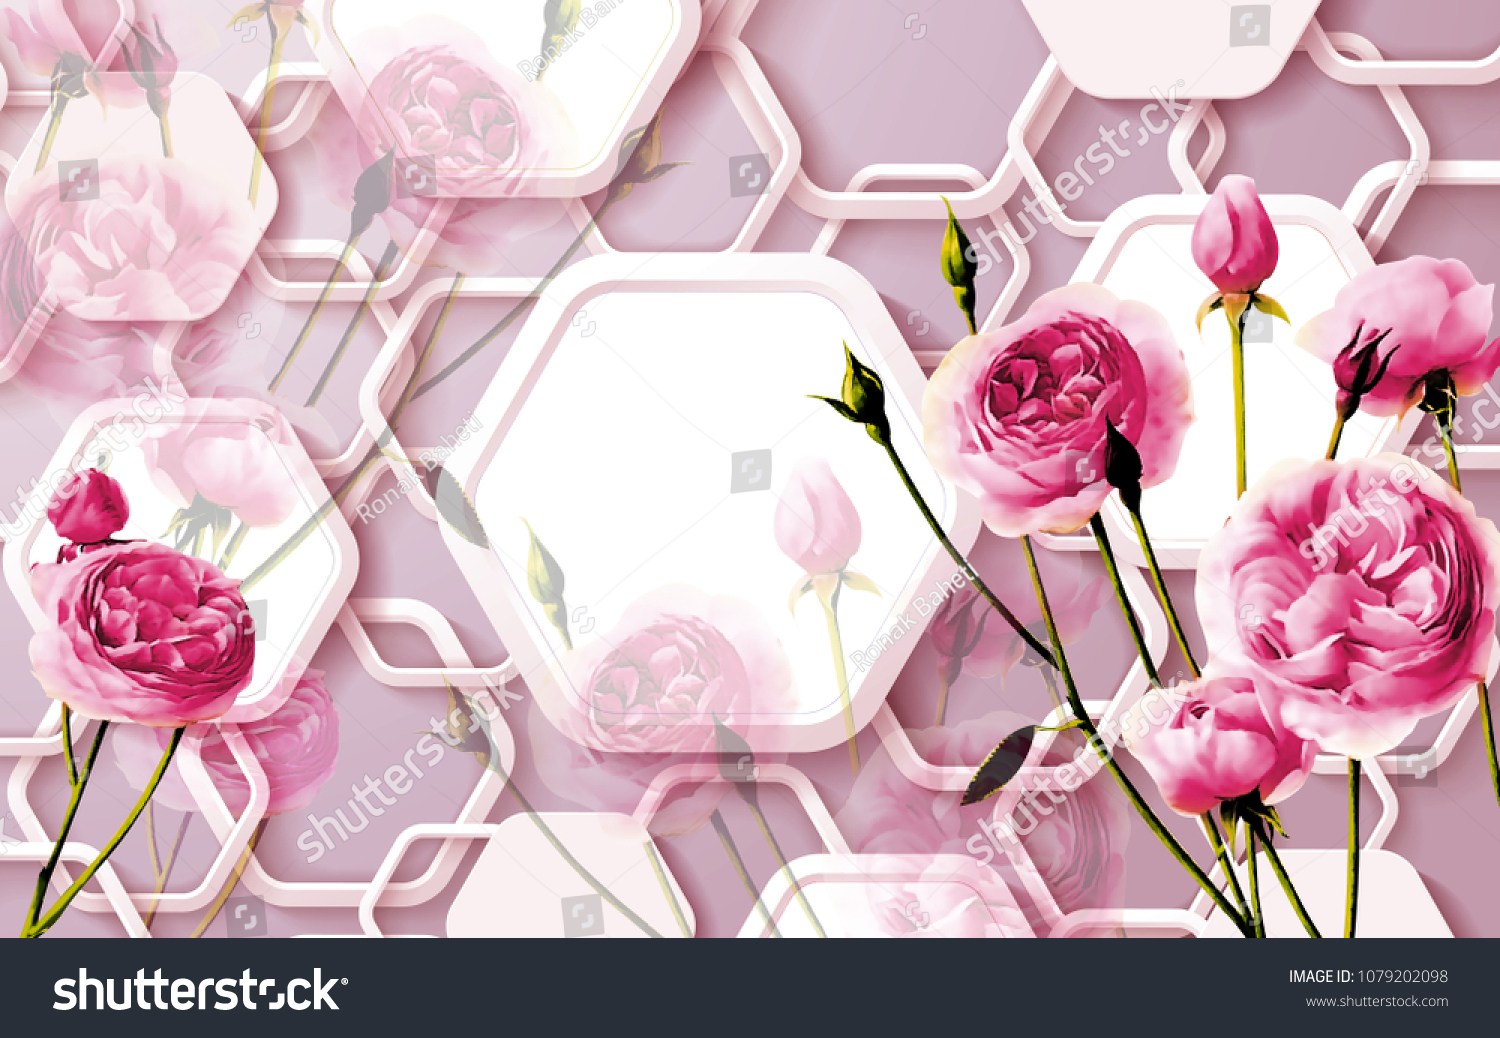 3d Floral Abstract Wallpaper Walls 3d Stock Illustration 1079202098